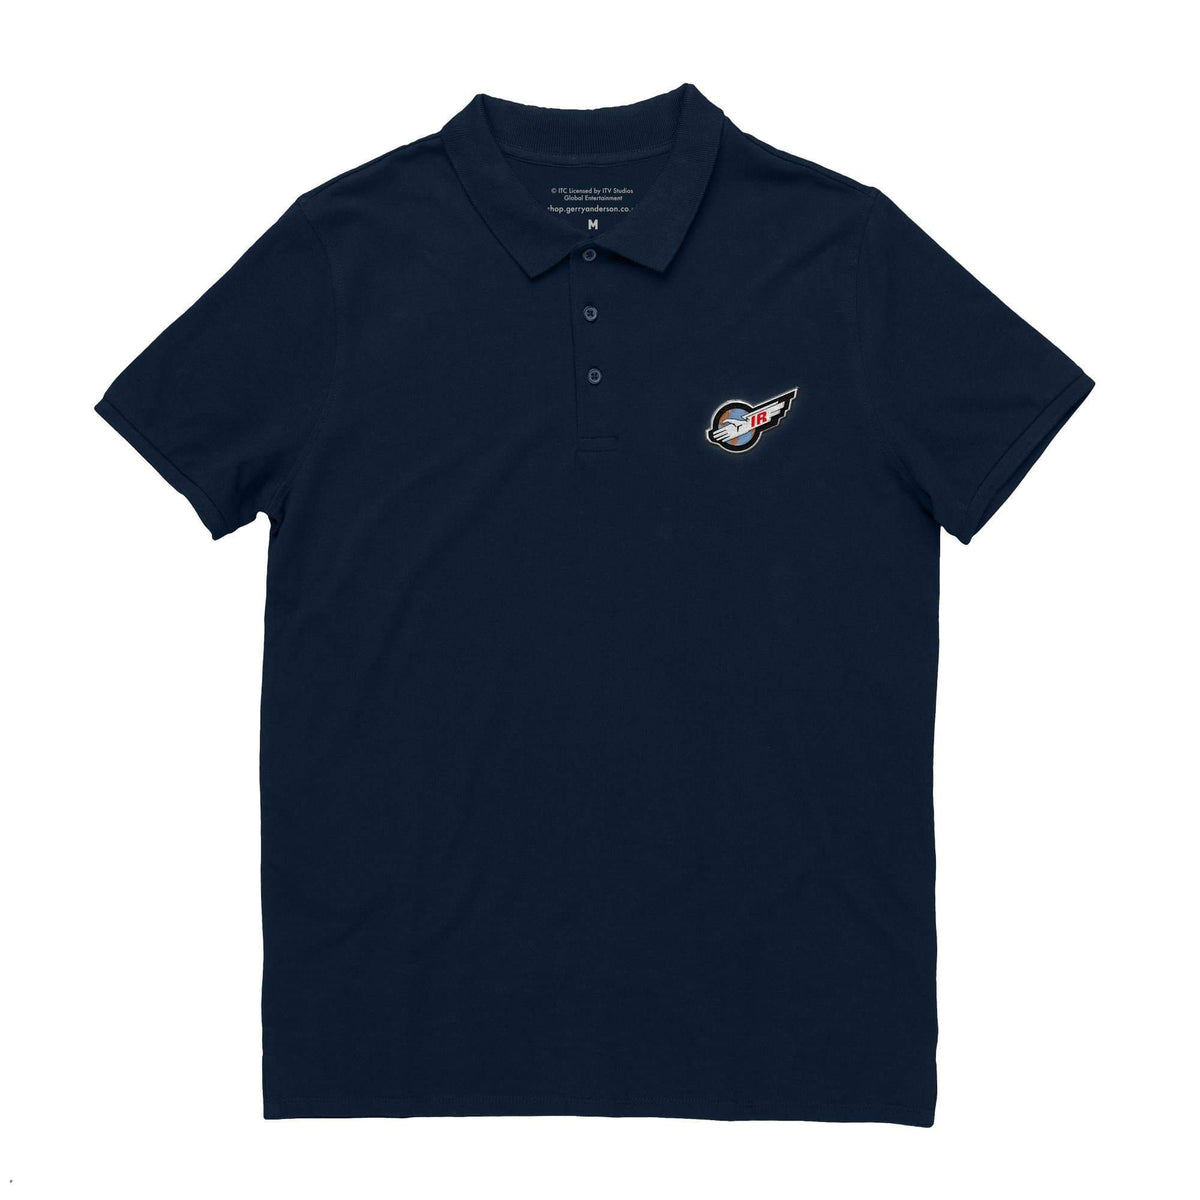 International Rescue/Thunderbirds Men's Polo Shirt [Official & Exclusive] - The Gerry Anderson Store